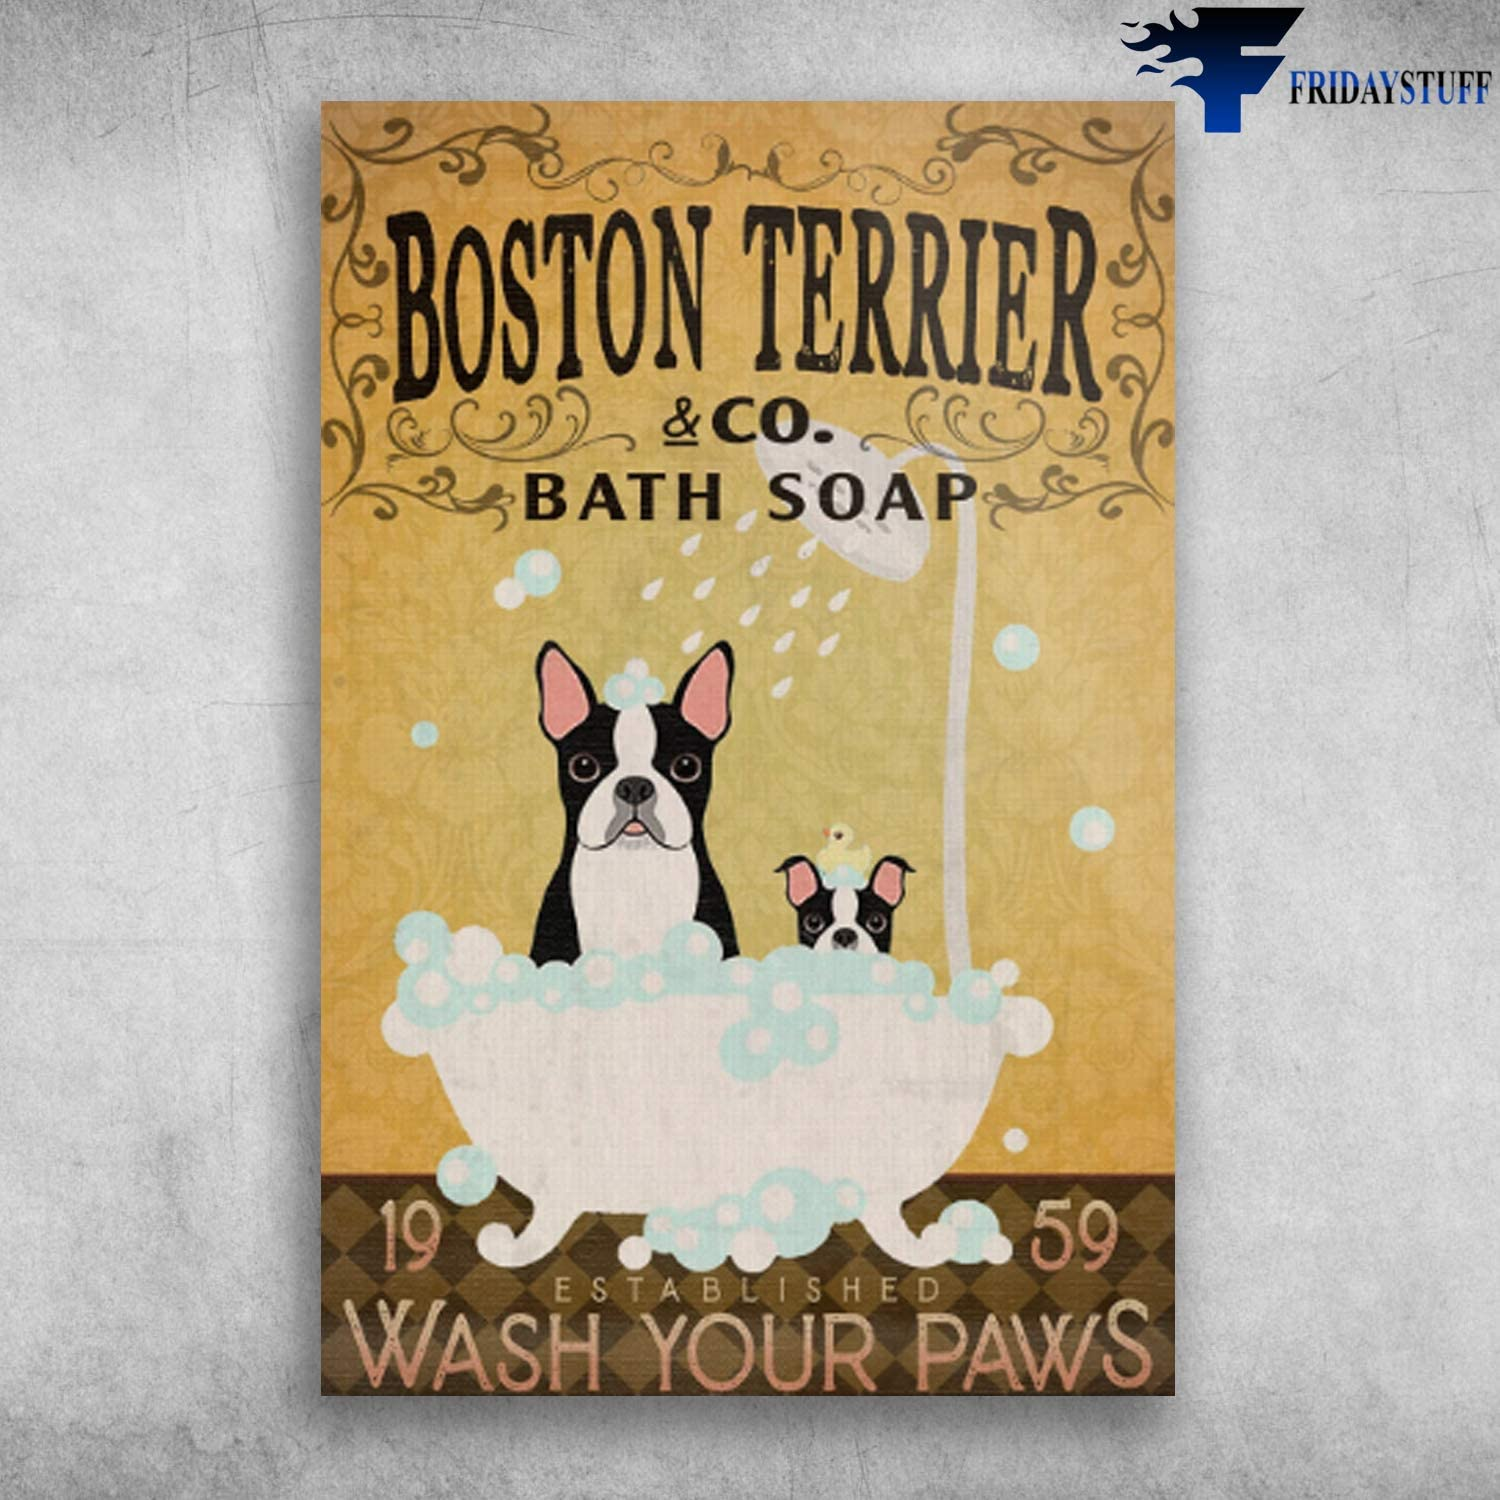 Amazon Com Robina Fancy Boston Terrier And Co Bath Soap Established Wash Your Paws Poster Gift For Women Men On Birthday Xmas Art Print Size 11 X17 12 X18 16 X24 24 X36 Posters Prints